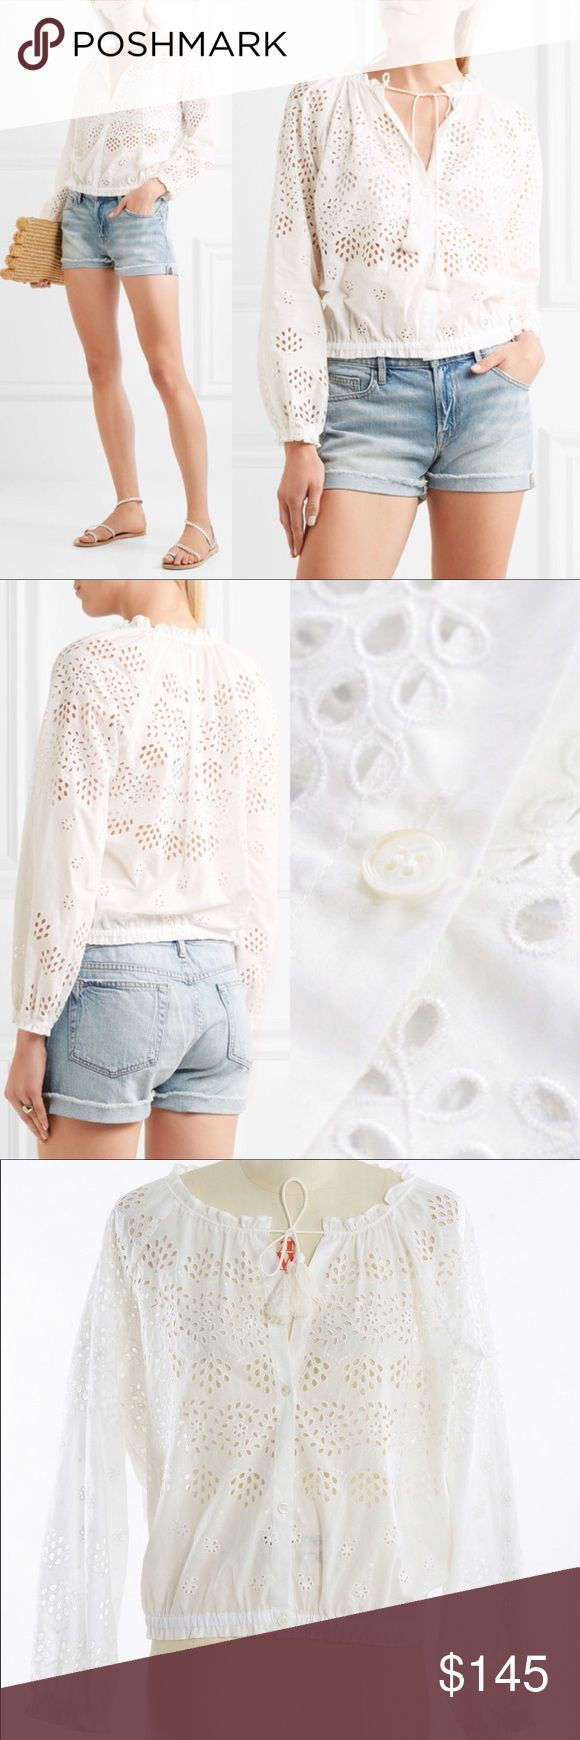 Theory Maryana Vintage Eyelet Jacket Top white new Condition: brand new without tags, never worn. 2017 s/s Collection. Theory's 'Maryana' blouse takes its cue from bohemian styles from the '70s. Cut from broderie anglaise cotton, this billowy piece has drawstring tassels and a gathered hem to define its voluminous shape. White broderie anglaise cotton - Button fastenings through front - Fits true to size - Designed for a loose fit - Elasticated at the hem - Measurements in cm:XS bust 112…